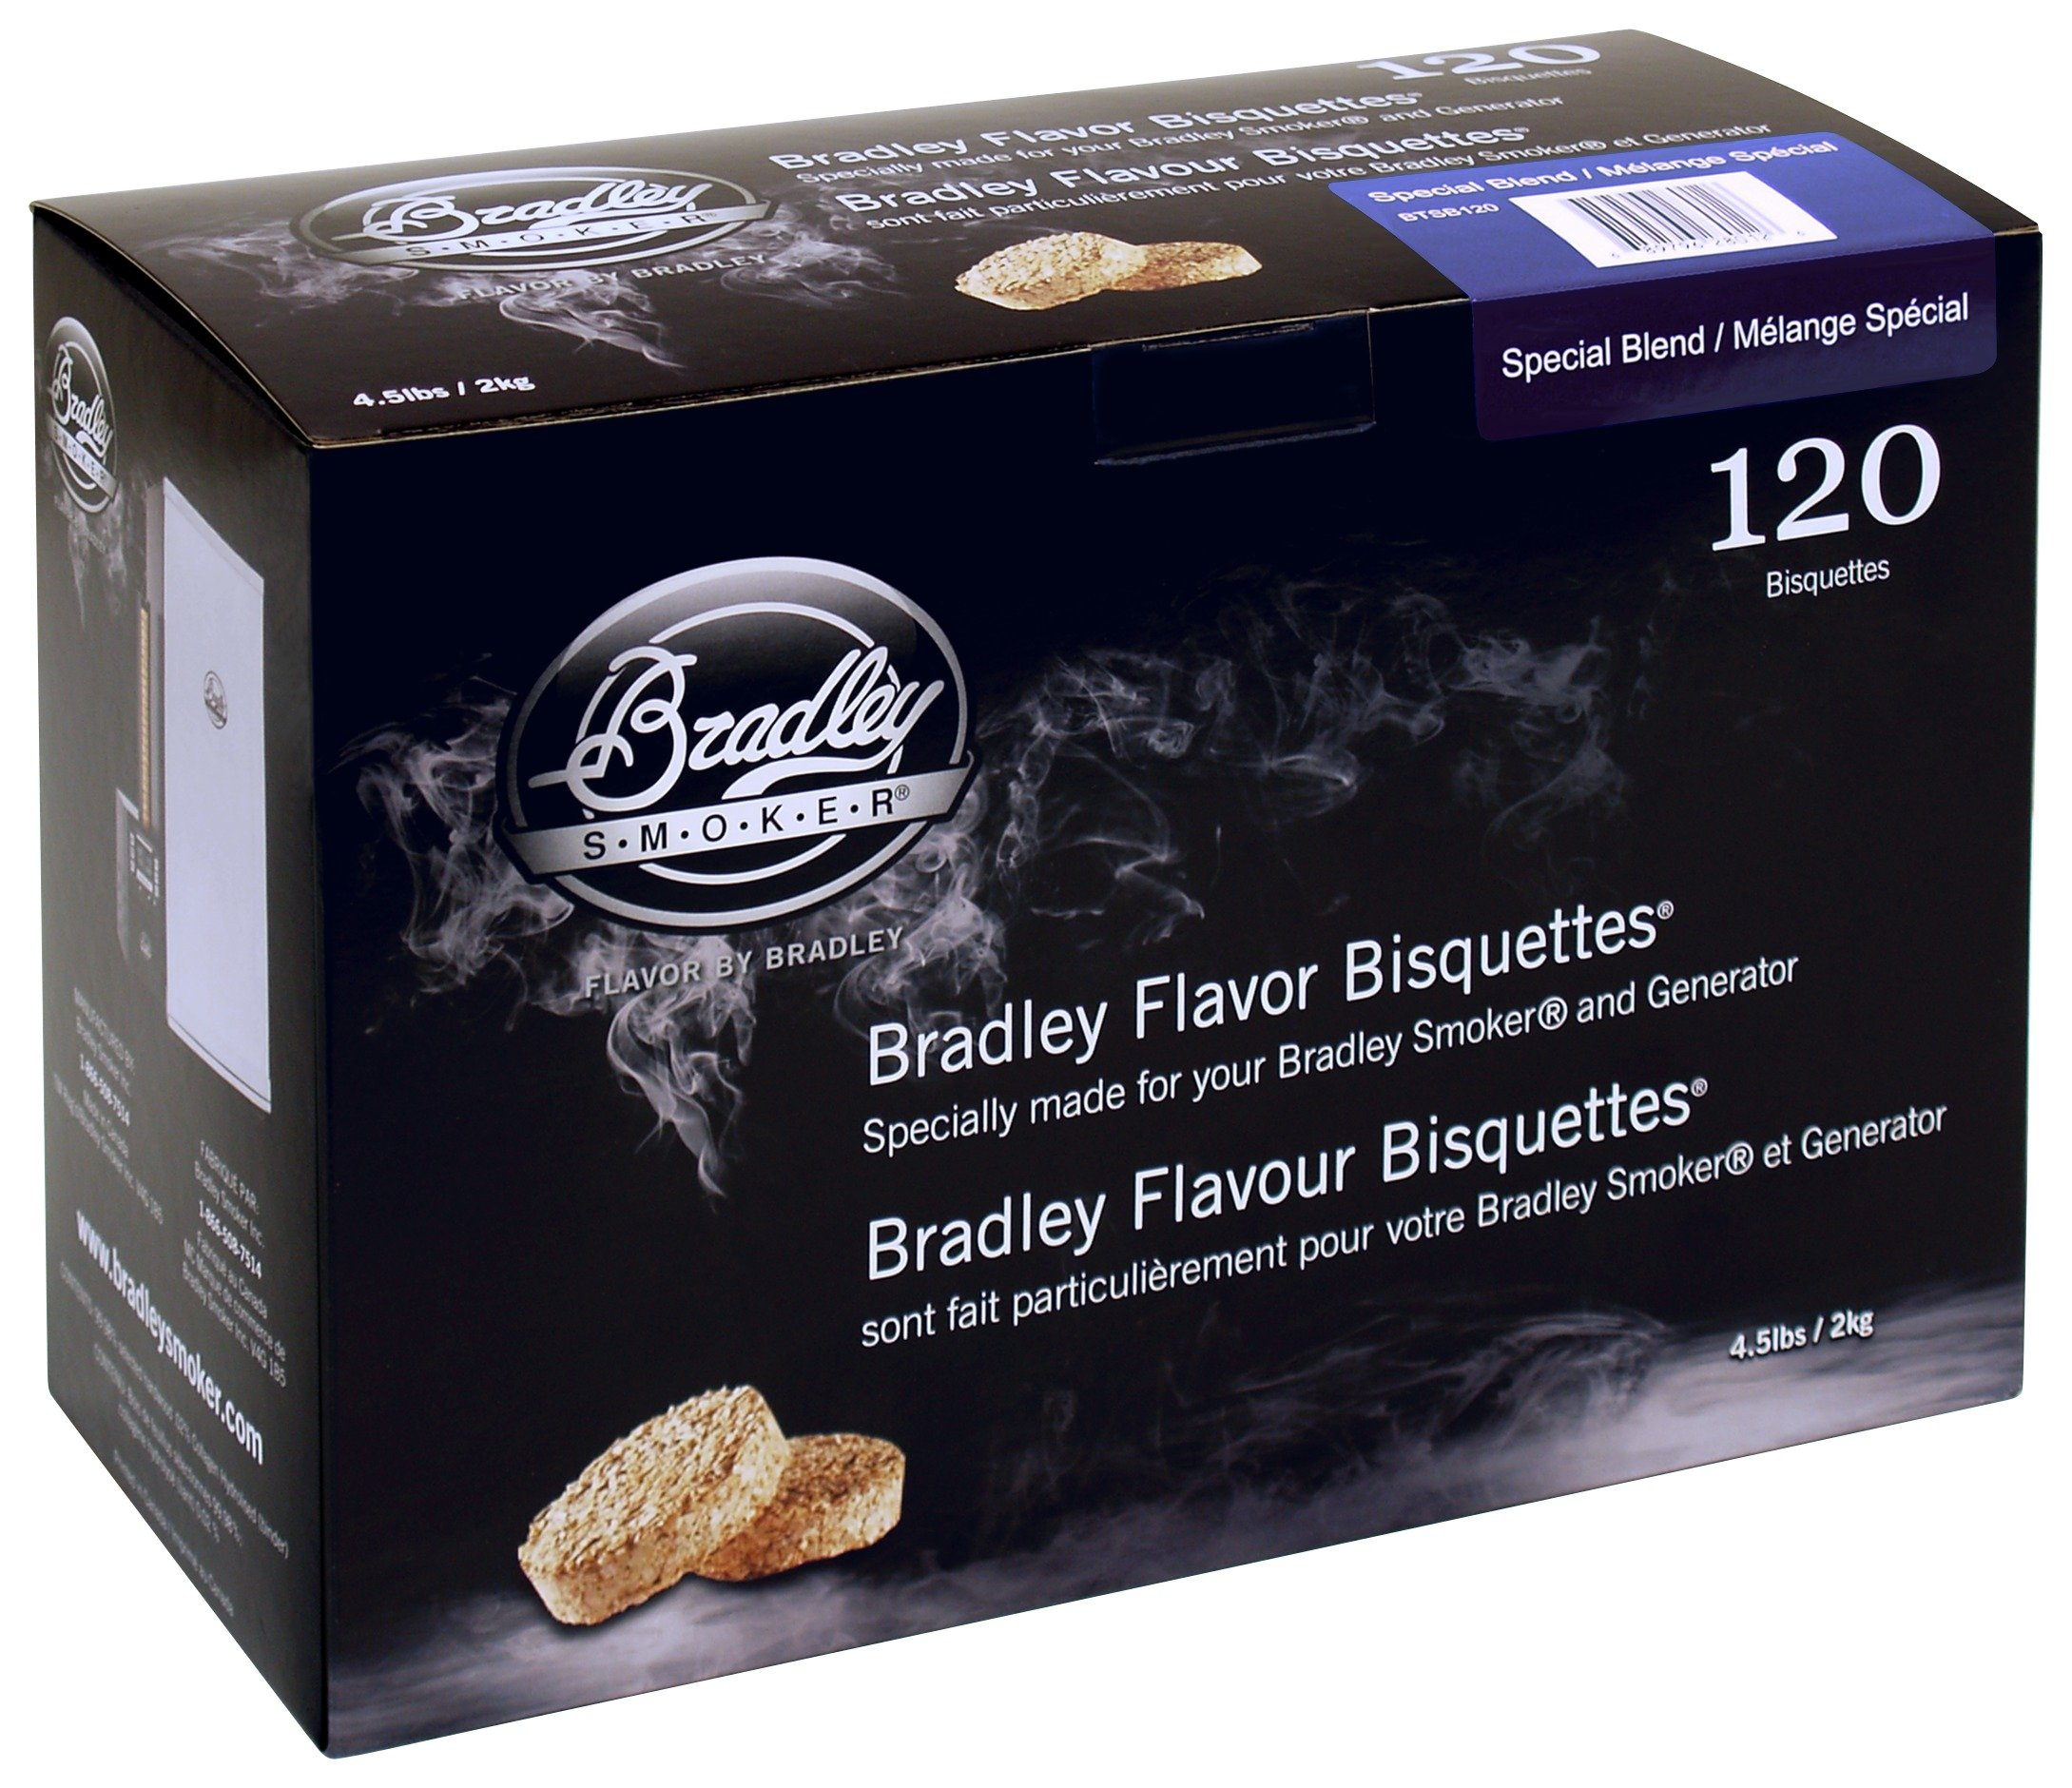 Image of Bradley Smoker - Special Blend Bisquettes - 120 Pack